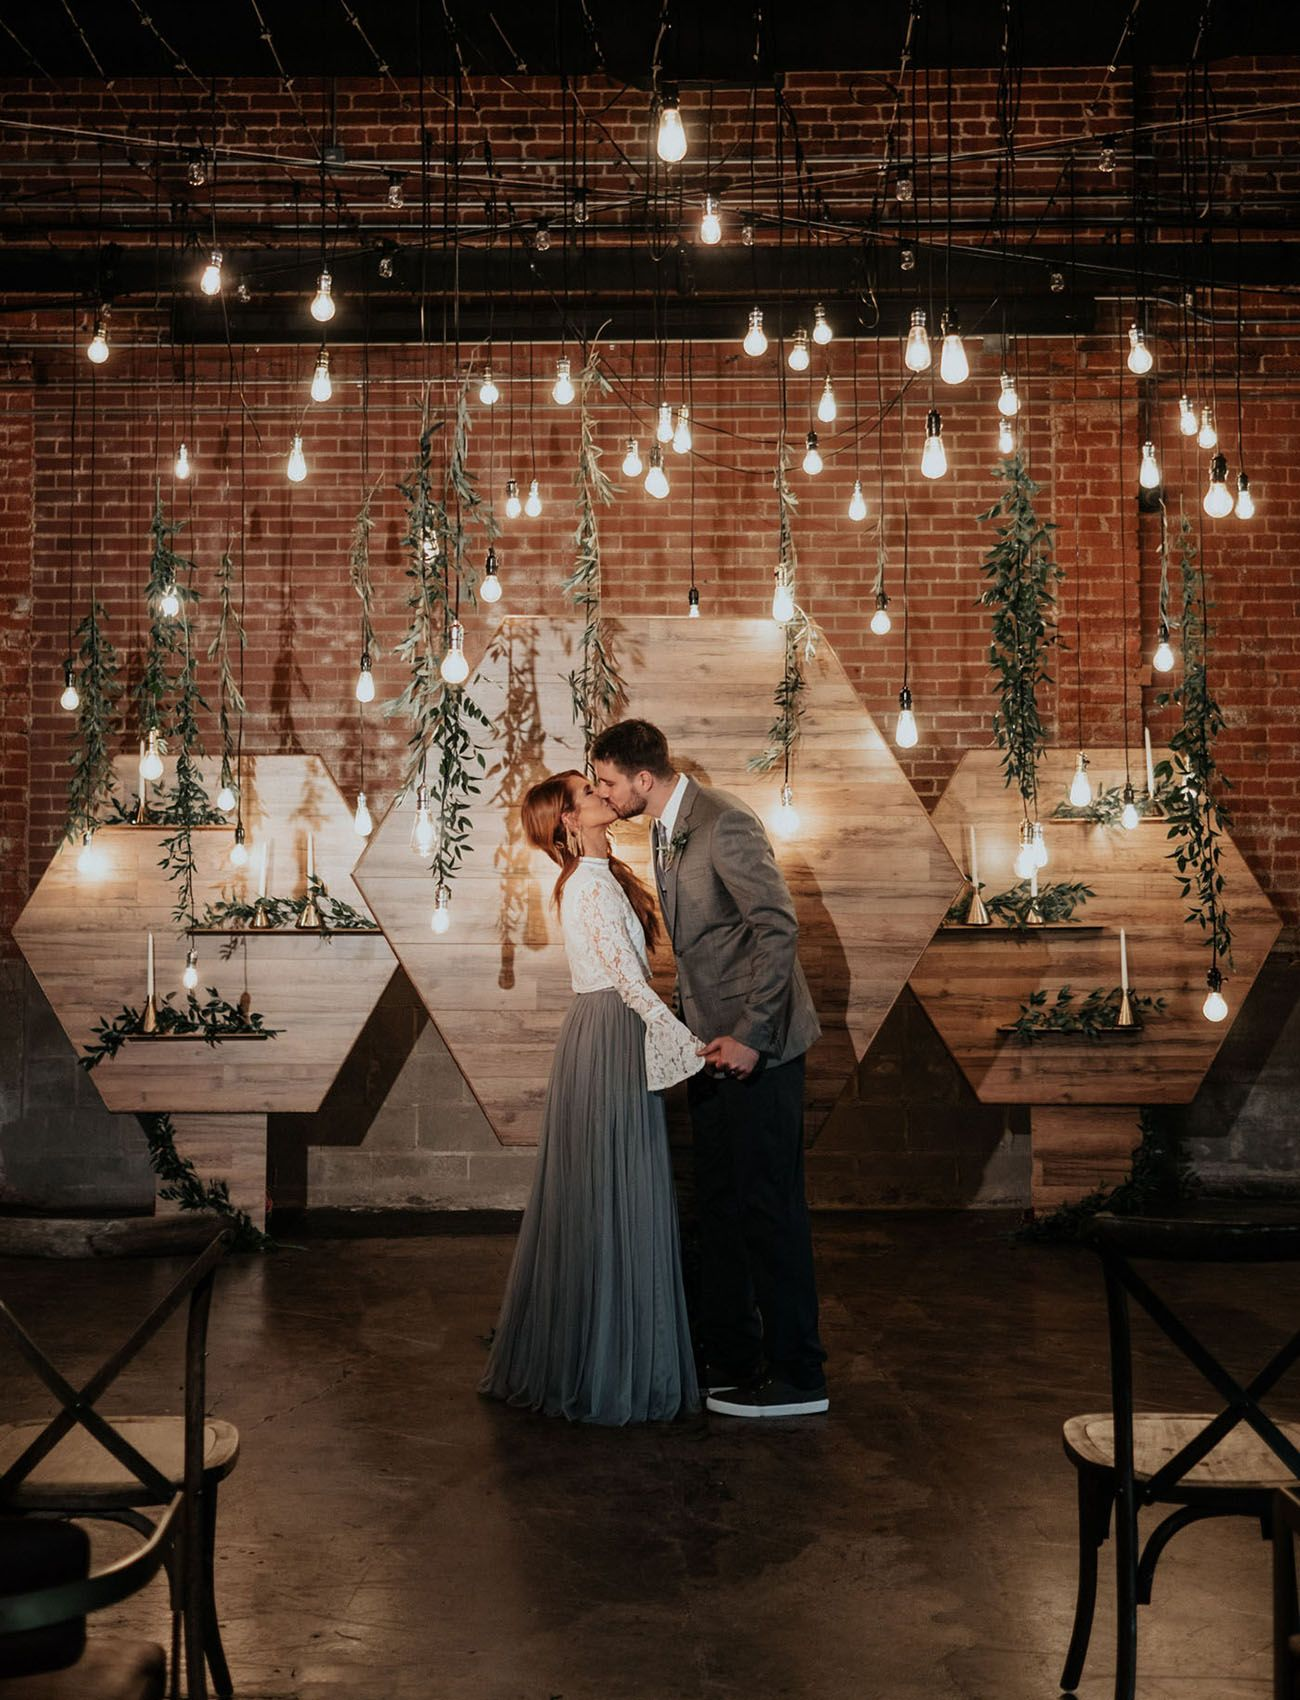 Hanging lights wedding decor  Refined Industrial When Wood Meets Water Wedding Inspiration